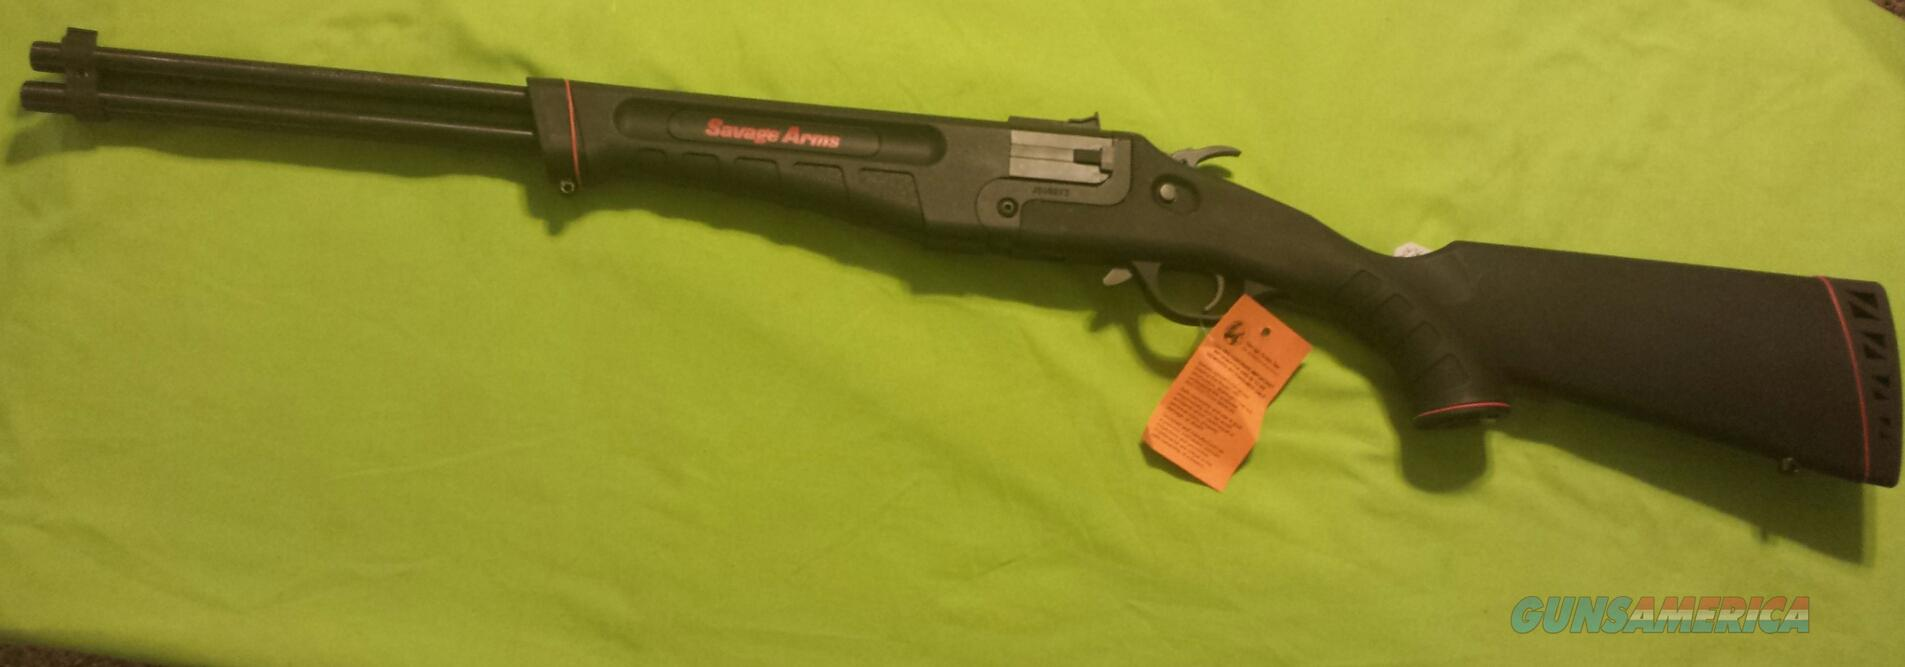 SAVAGE ARMS MODEL 42 410 BORE | 22 LR OVER UNDER  Guns > Rifles > Savage Rifles > 42